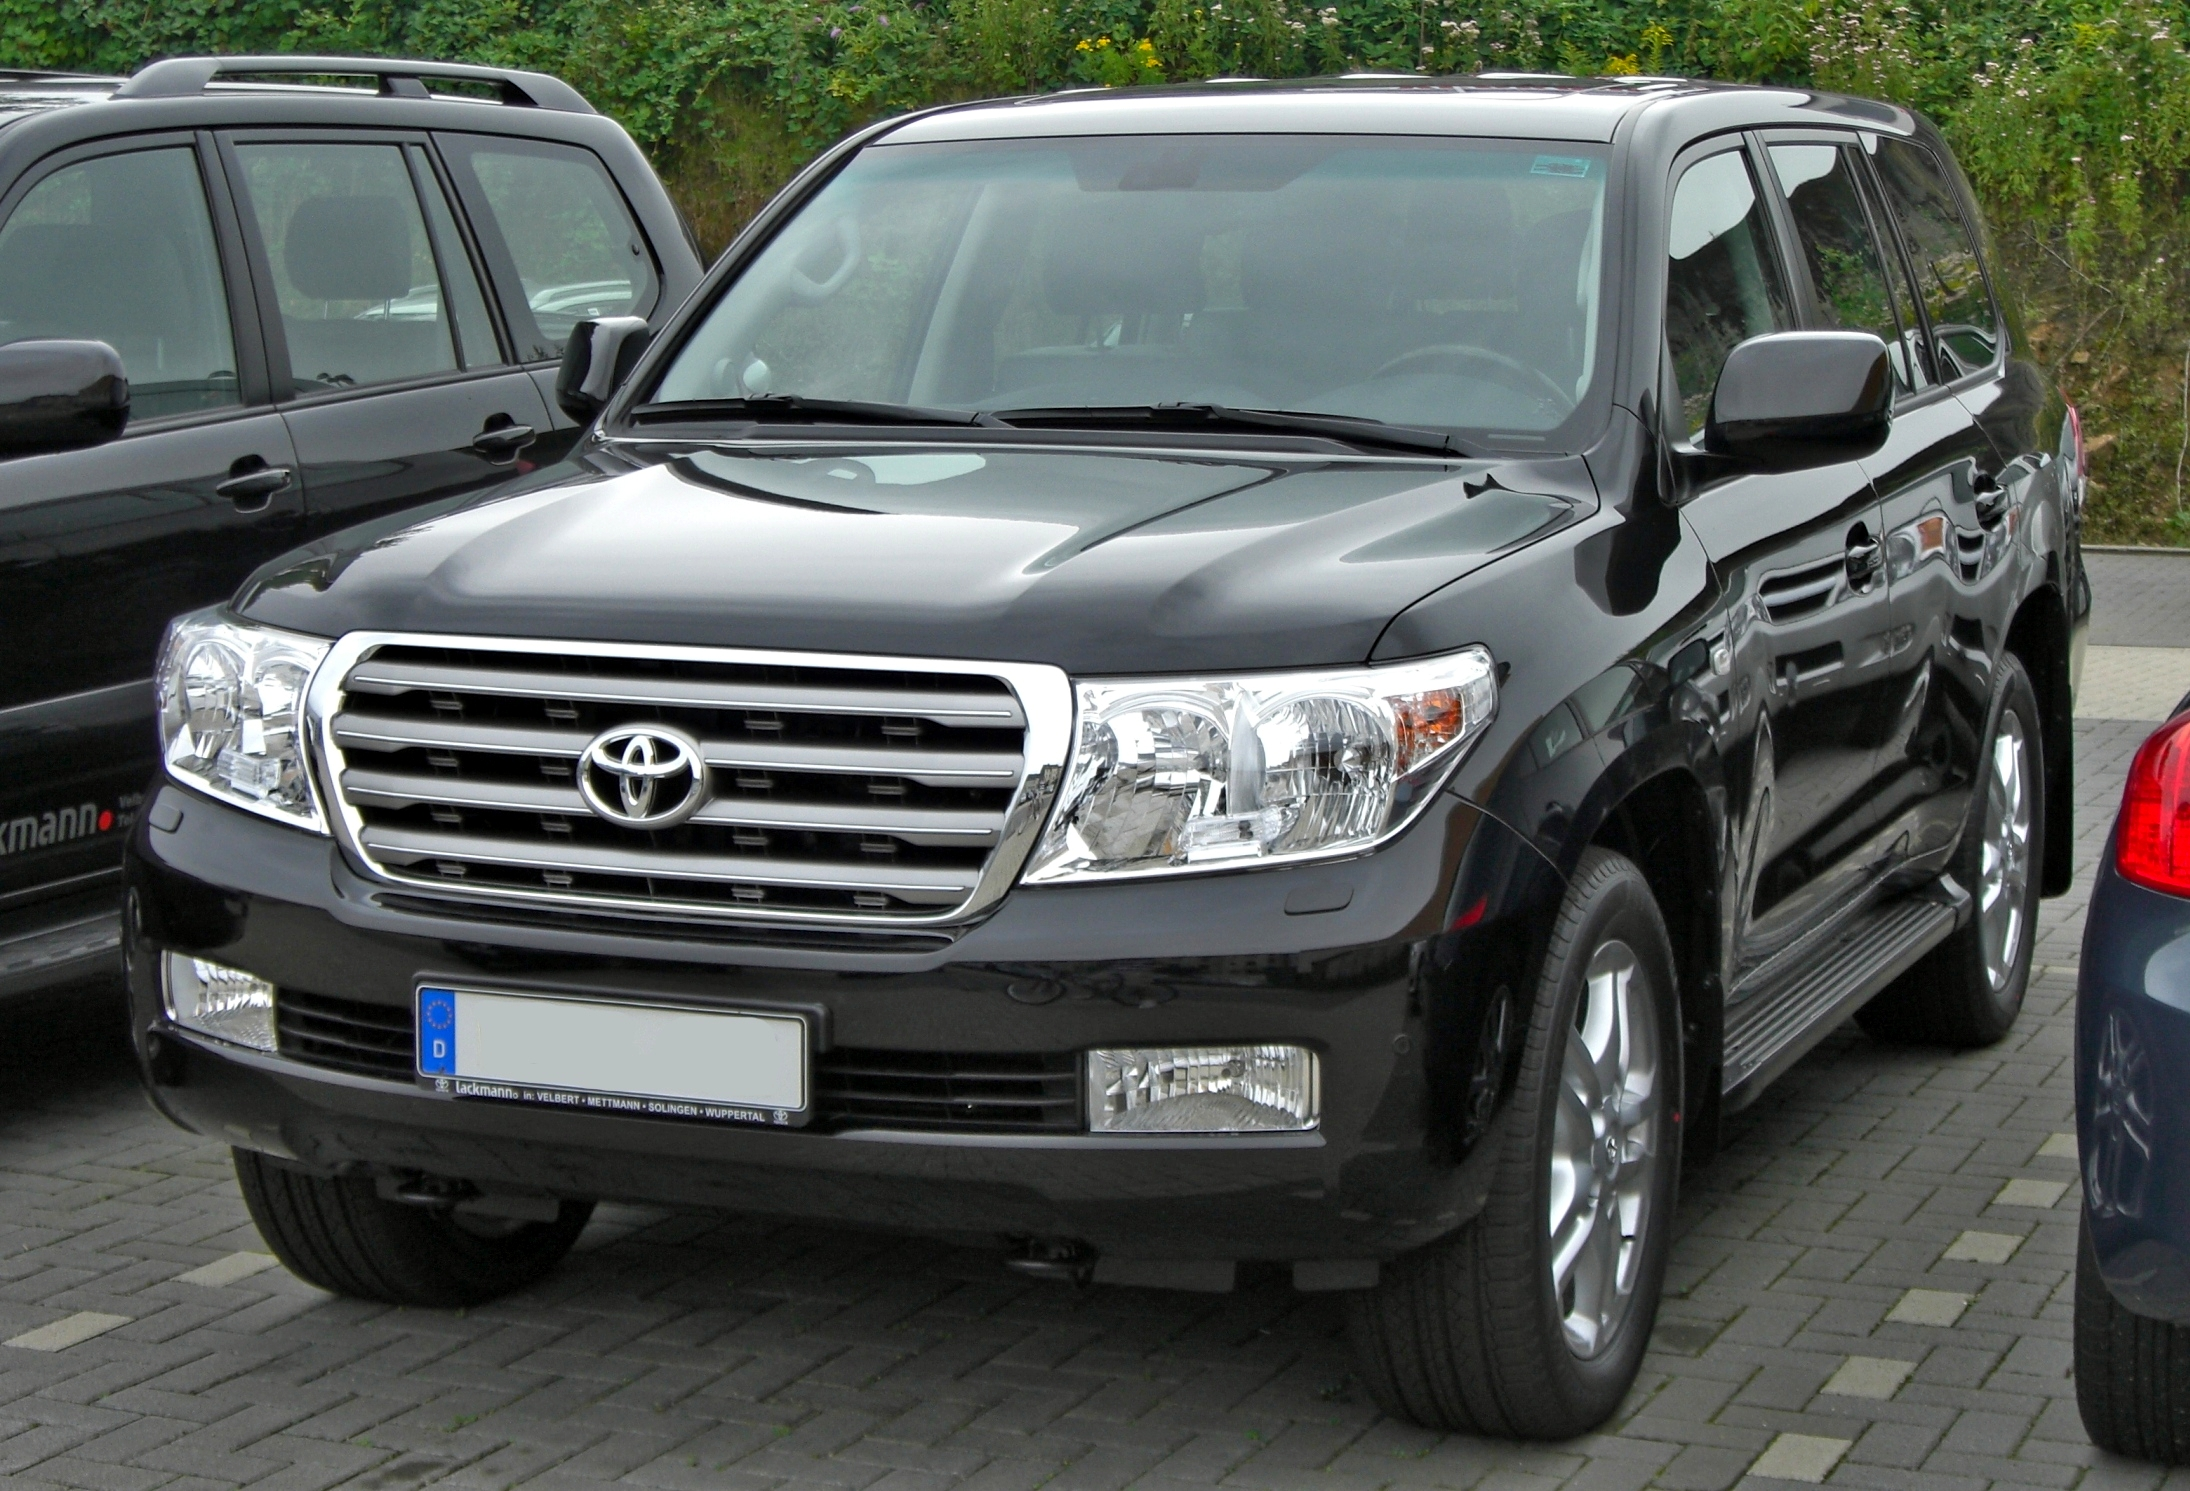 file toyota land cruiser v8 front jpg wikimedia commons. Black Bedroom Furniture Sets. Home Design Ideas